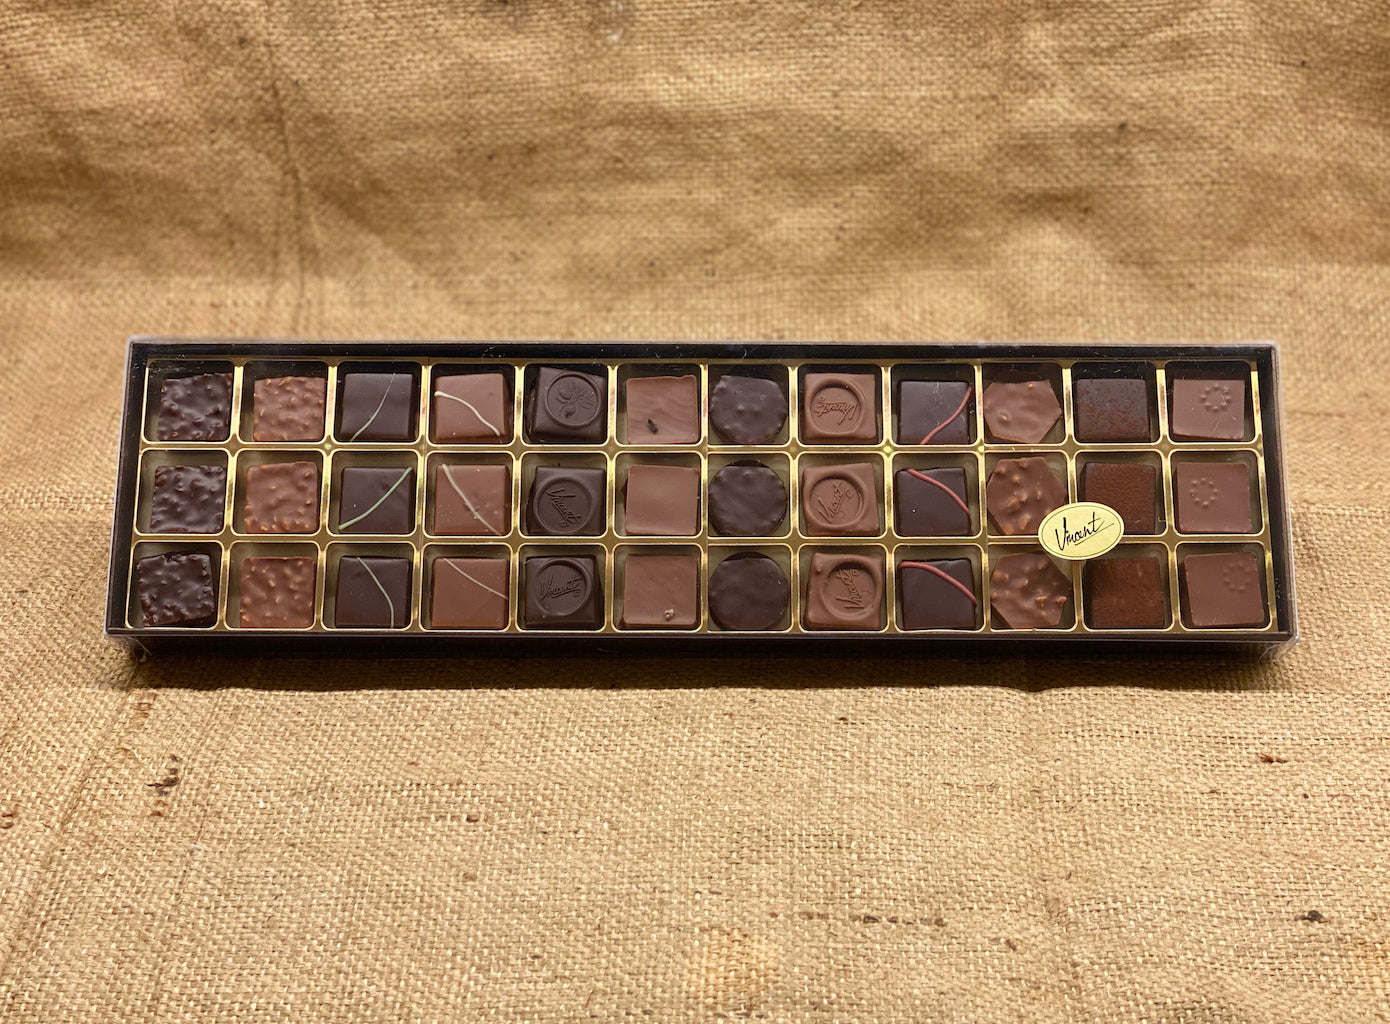 L'assortiment Chocolats Pralinés - Calibre 36